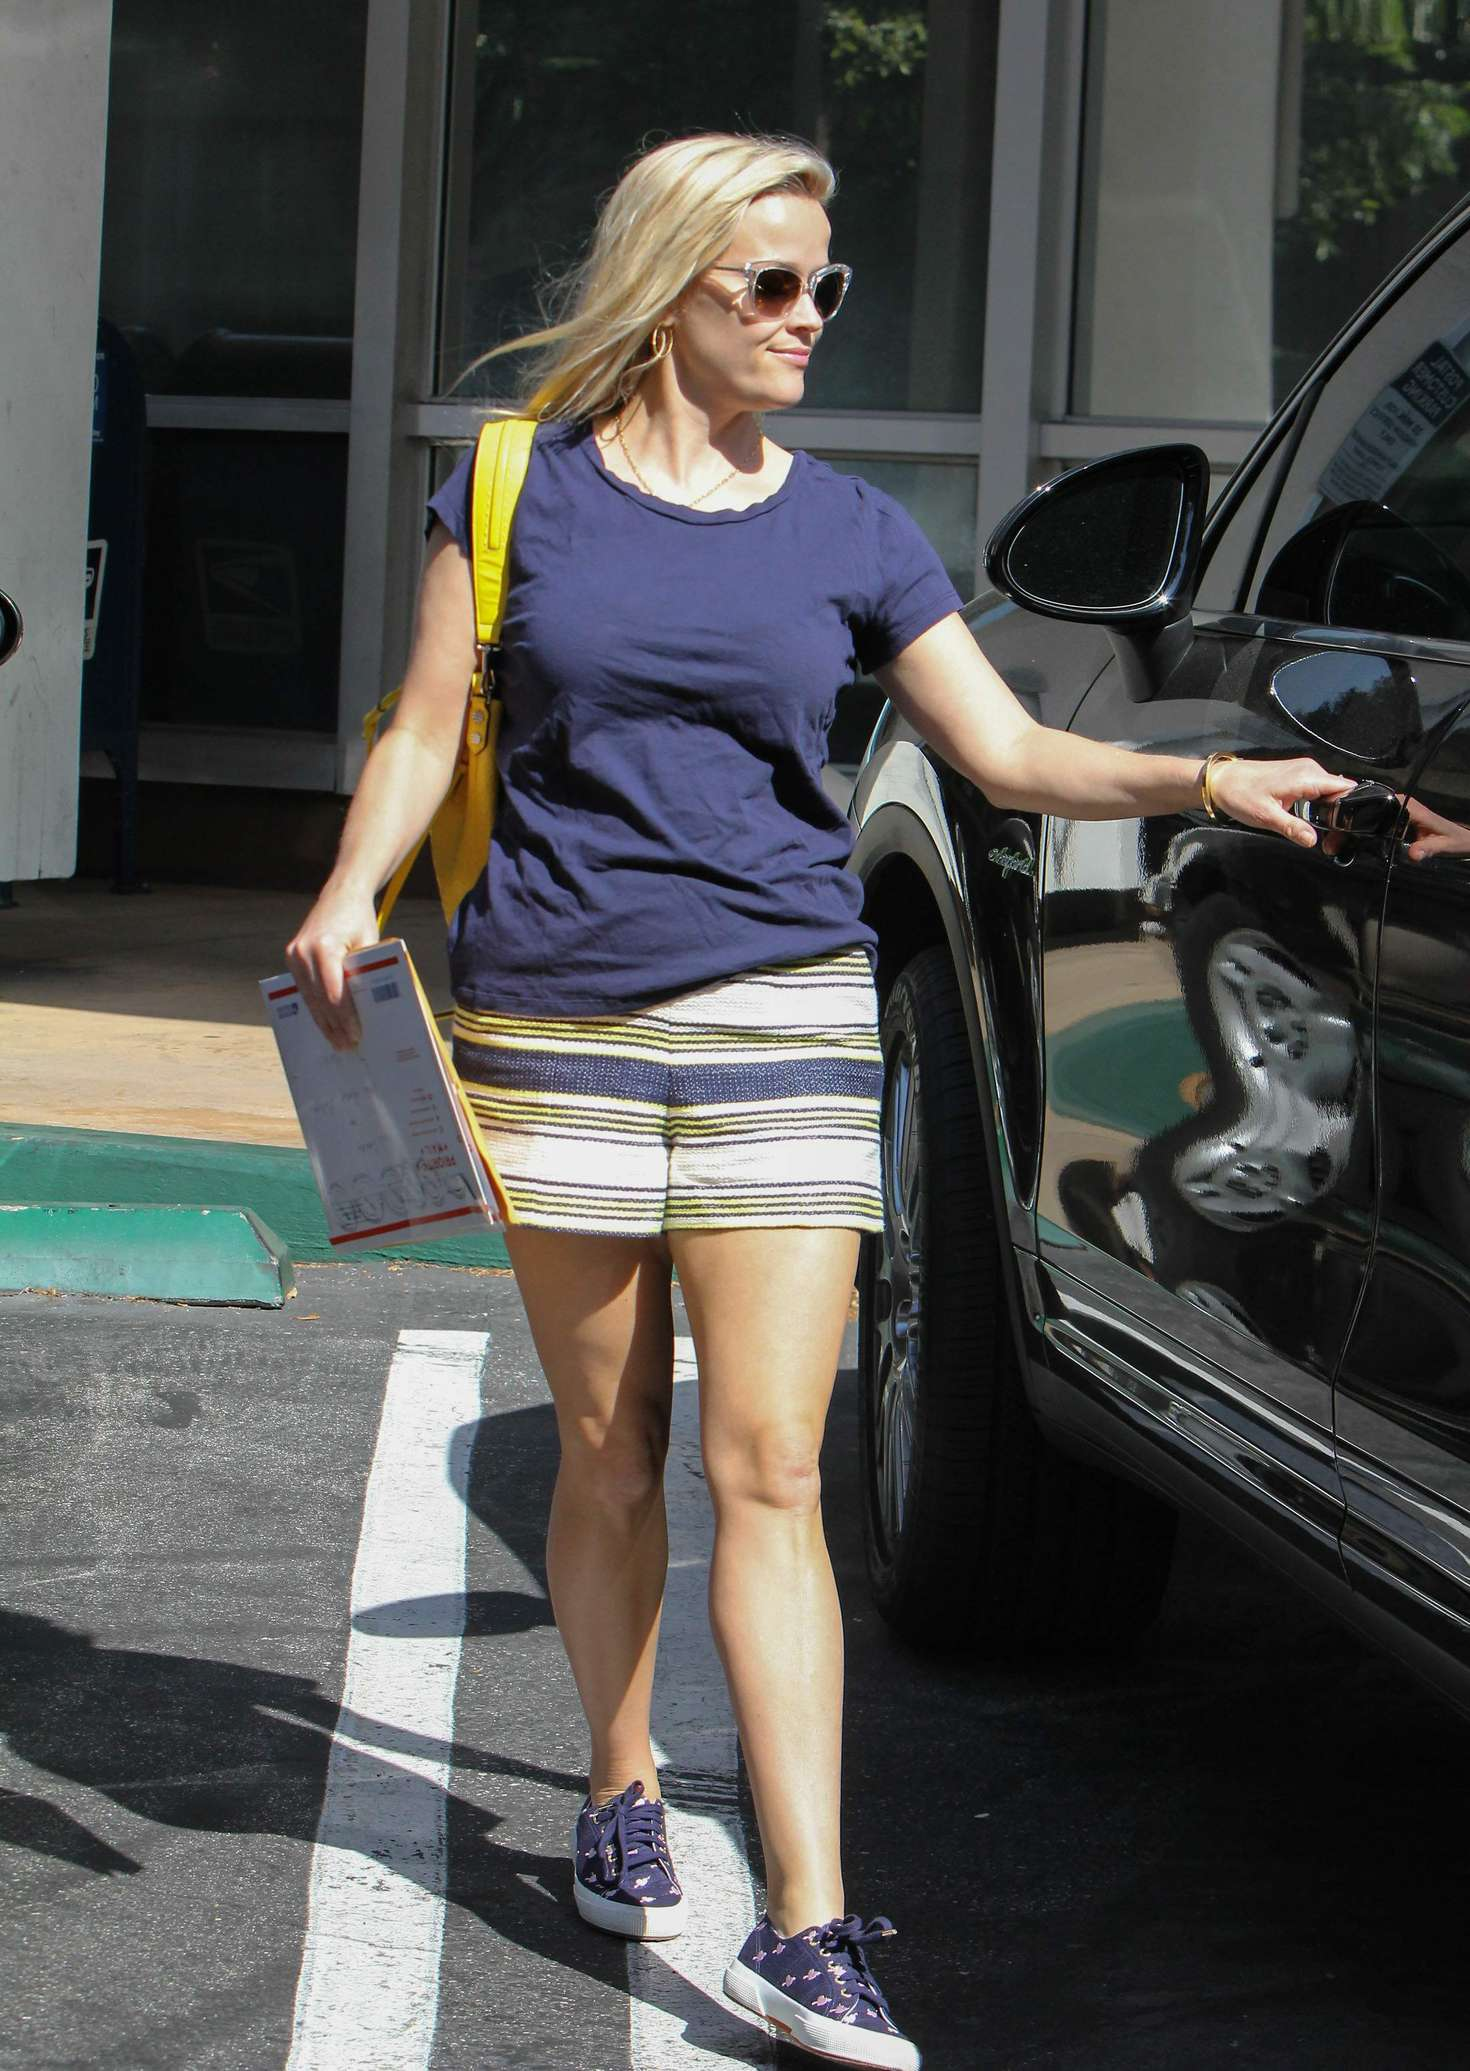 reese witherspoon in shorts out in los angeles � gotceleb